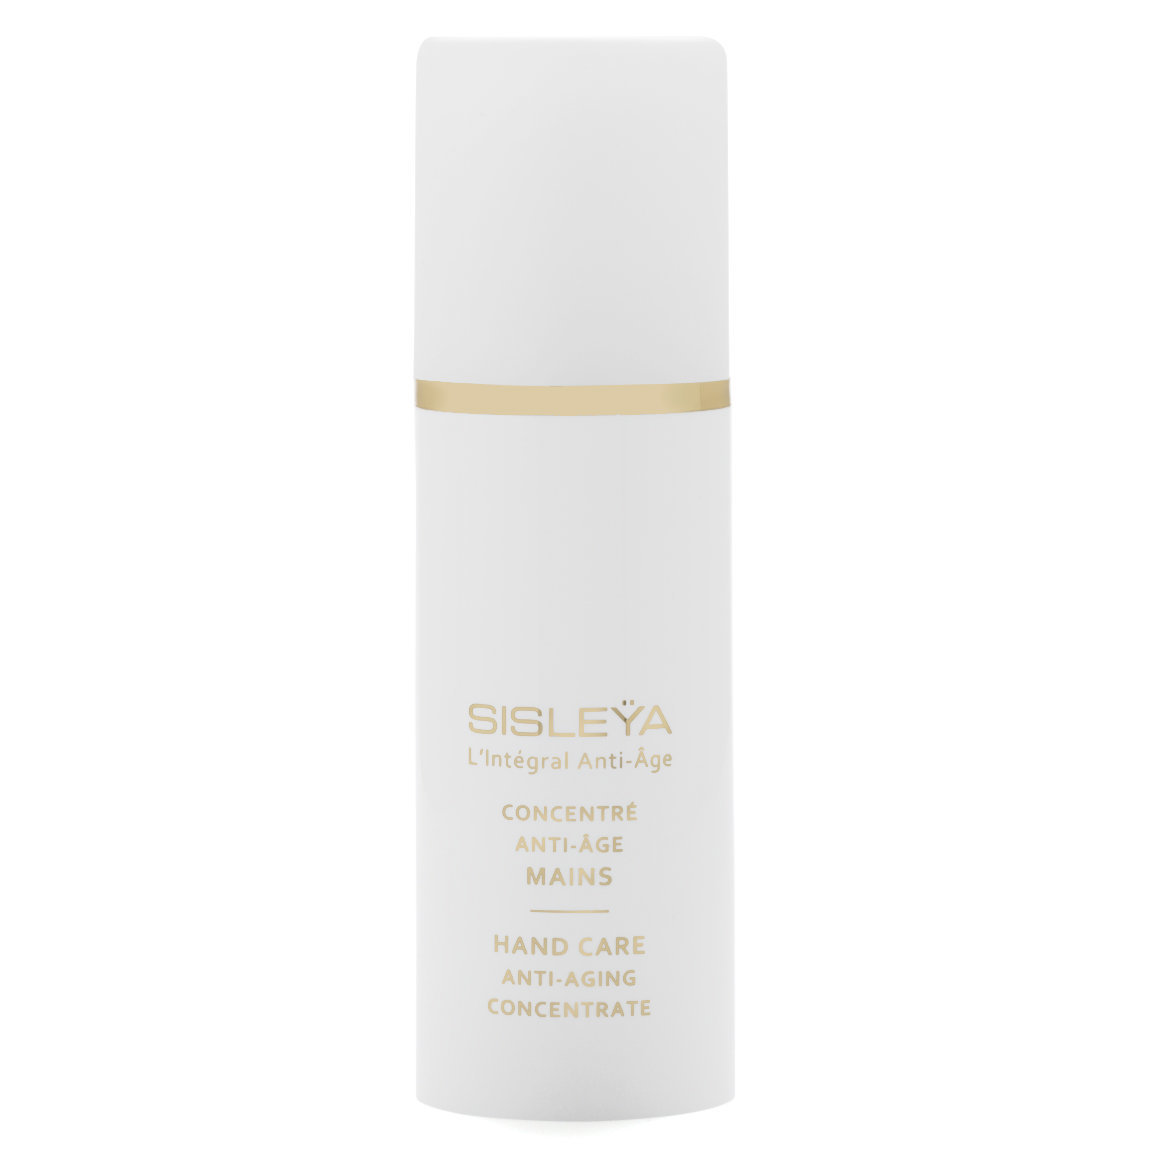 Sisley-Paris Sislëya L'Integral Anti-Age Hand Care Anti-Aging Concentrate product smear.